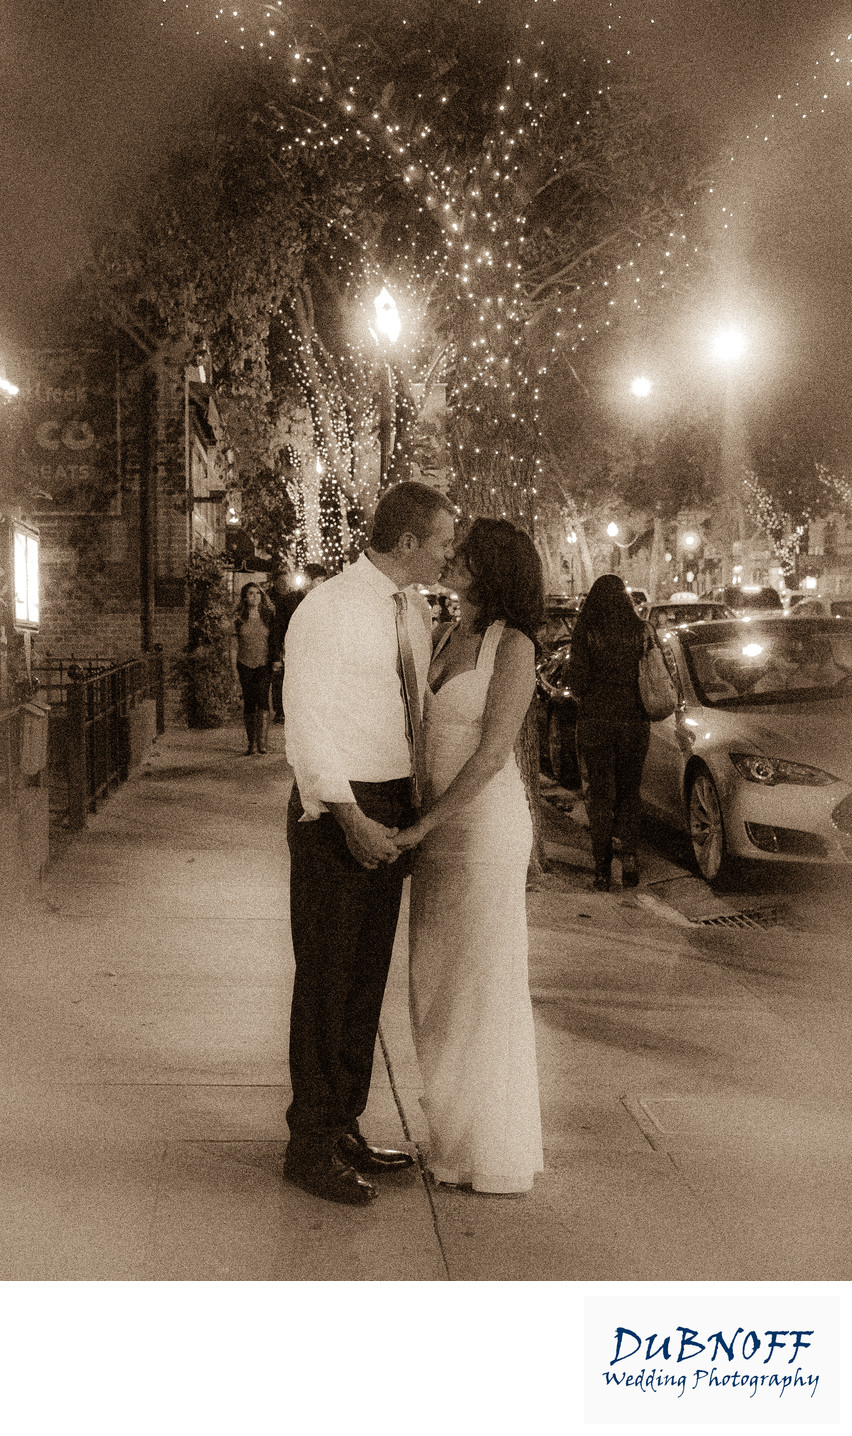 Downtown Wedding in Walnut Creek, CA in the Evening